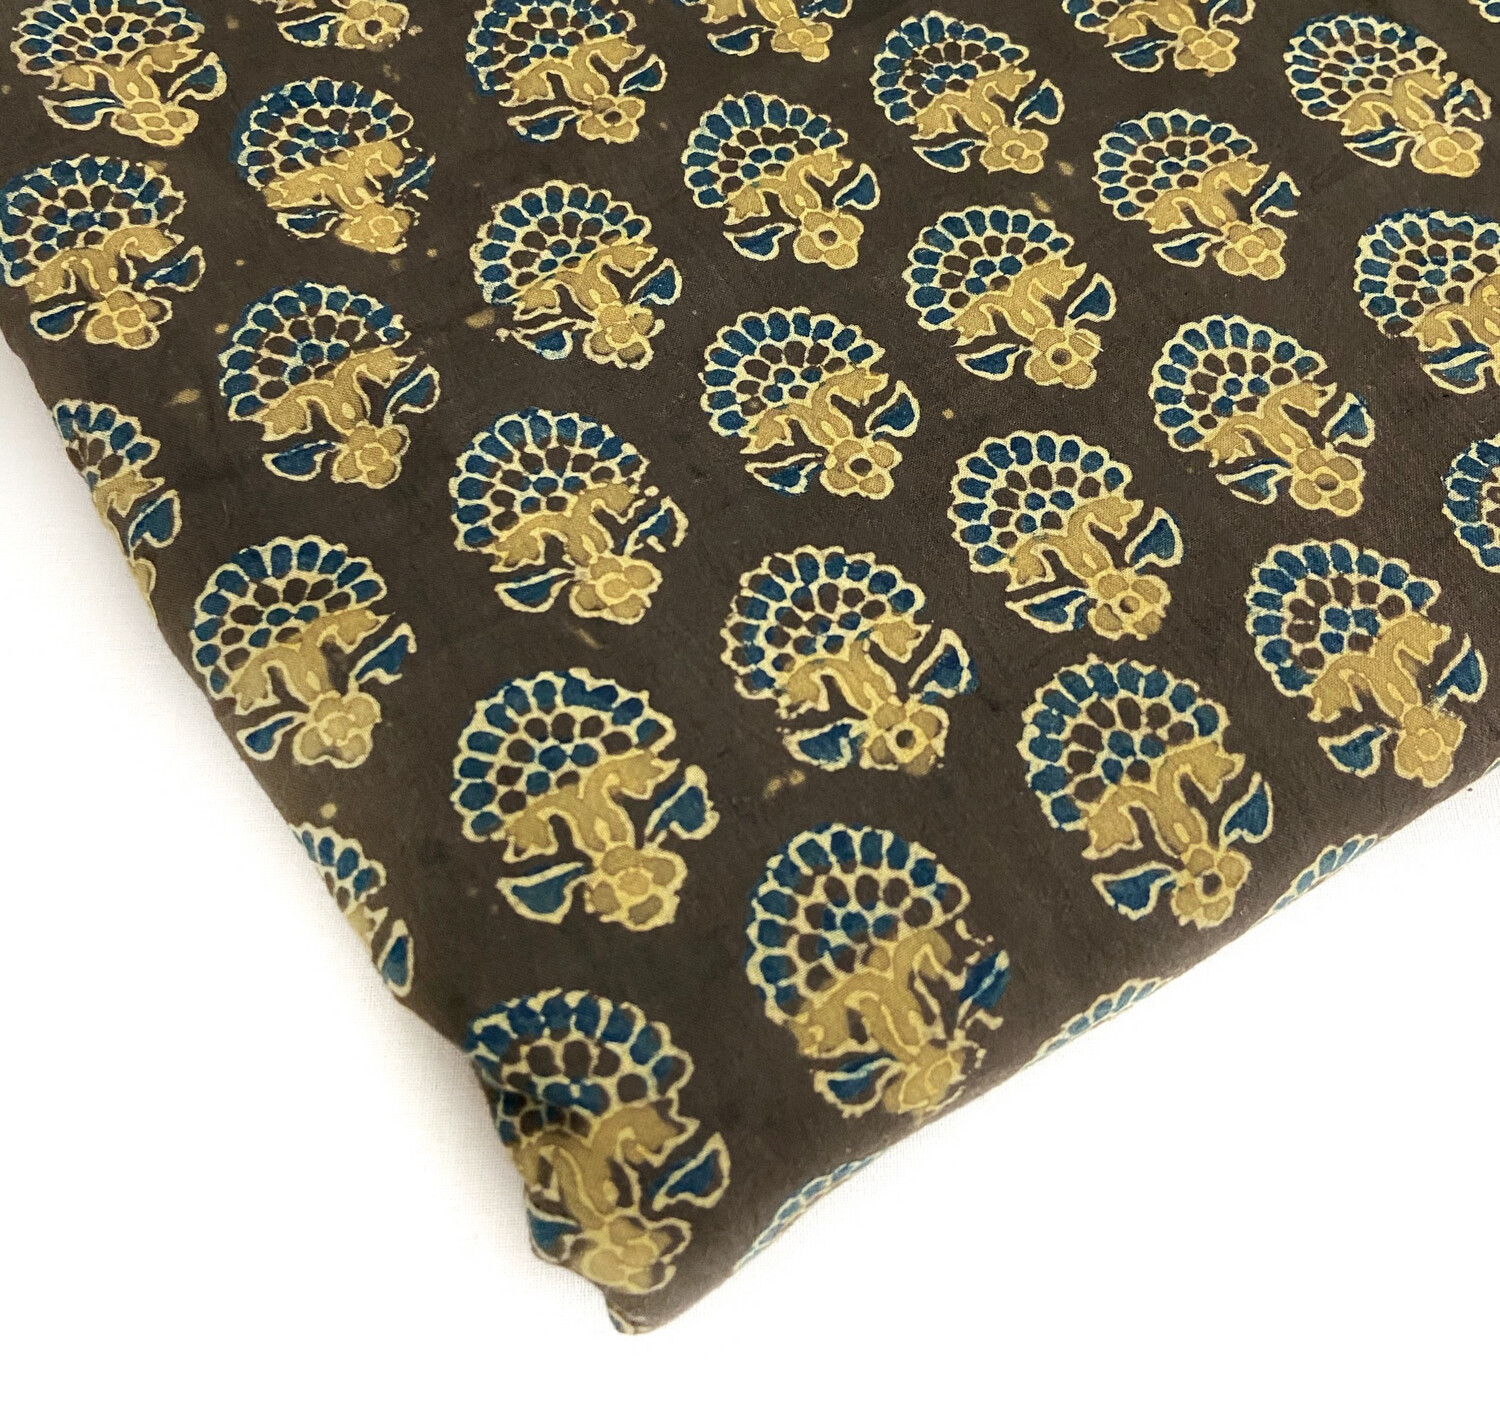 Product NameDark Brown Indian Cotton Block Print, Ajrakh Fabrics, Sewing Quilting Crafting Fabric, 44 Inch Wide, Sold by Half Yard